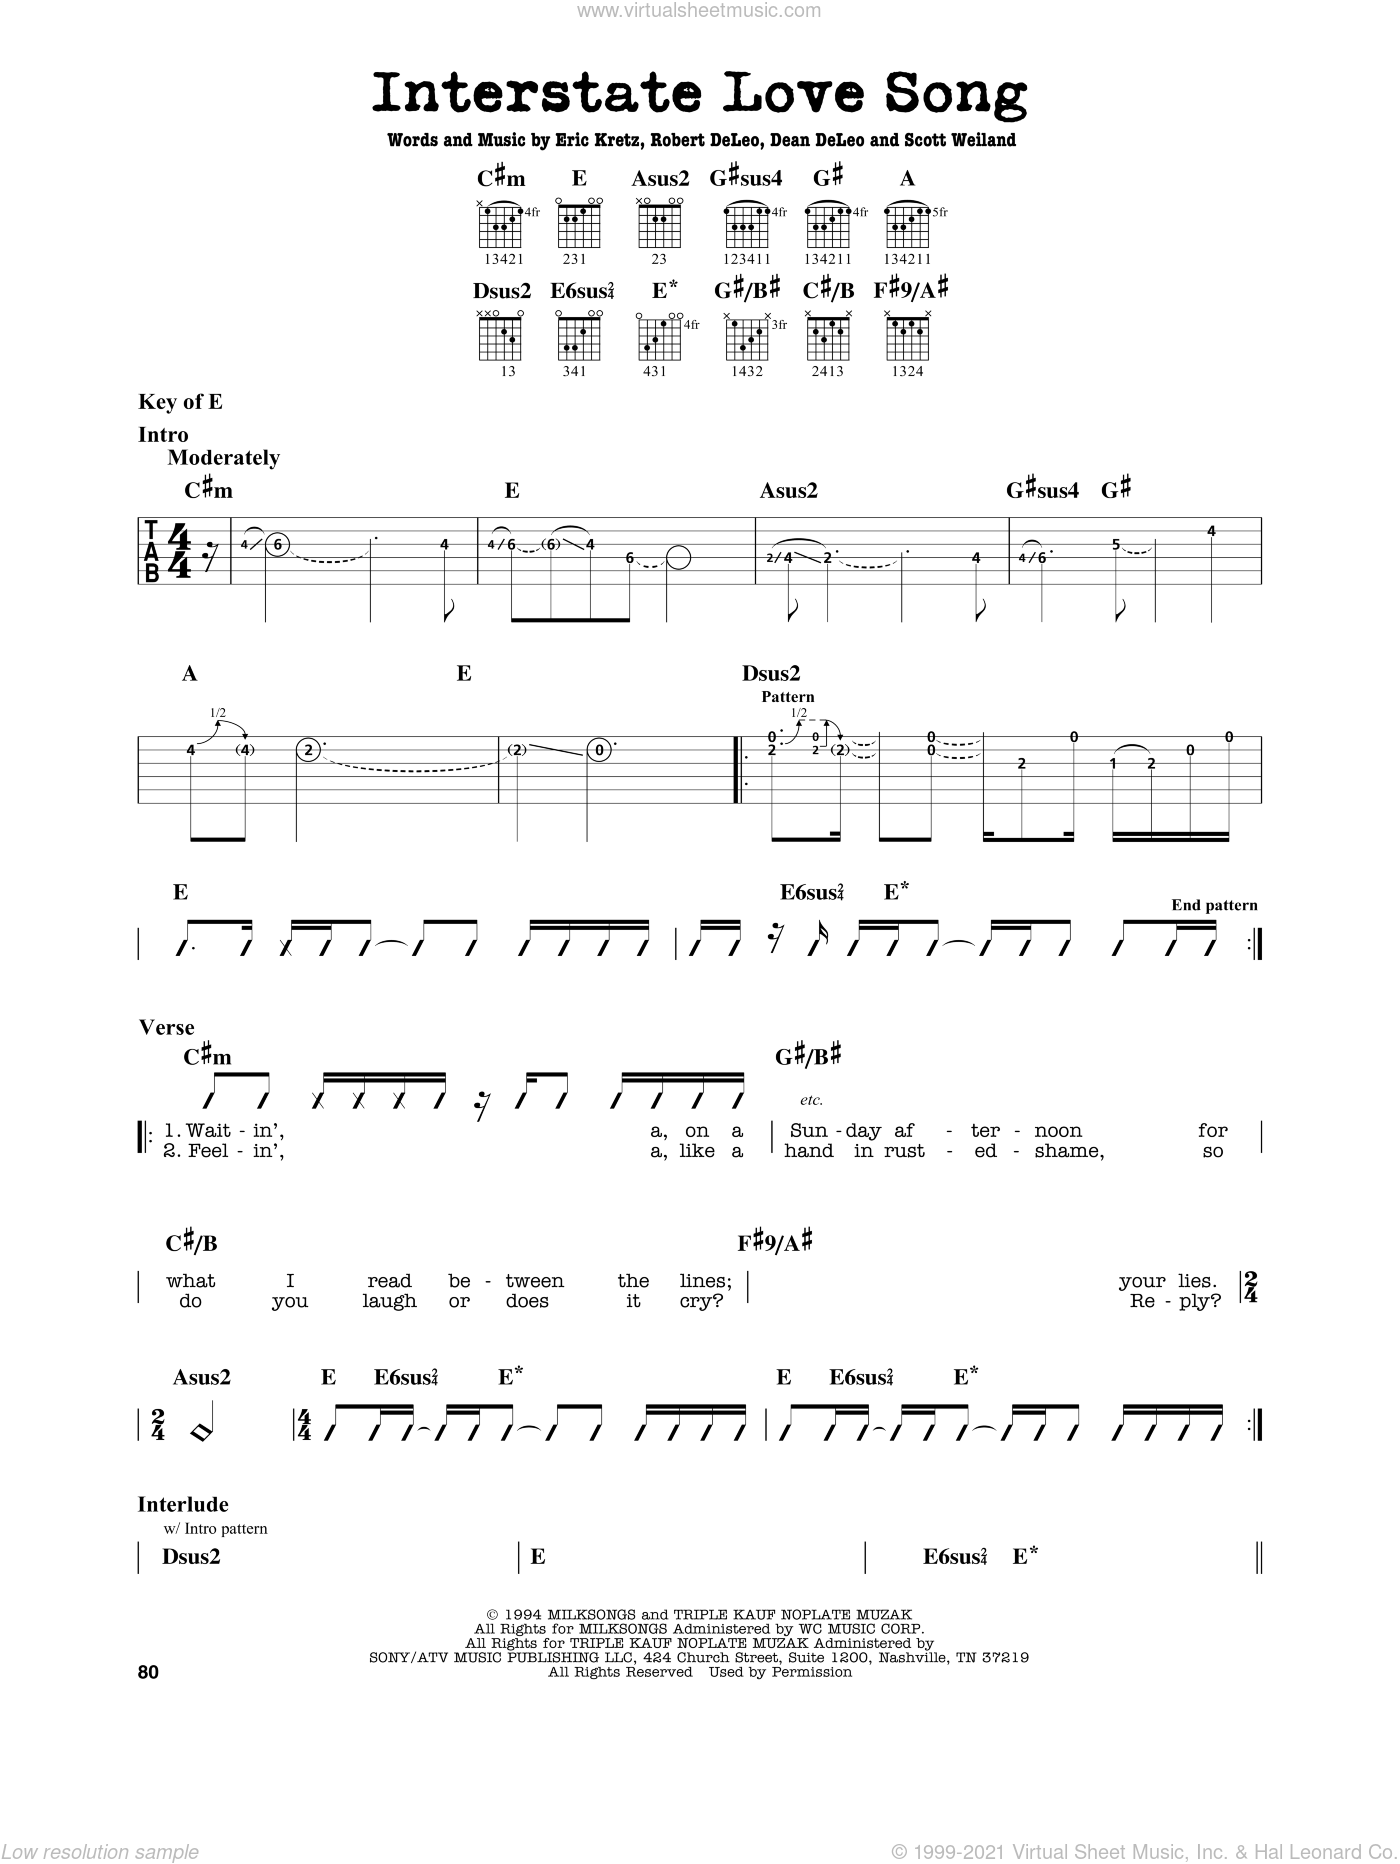 Interstate Love Song sheet music for guitar solo (lead sheet) by Scott Weiland